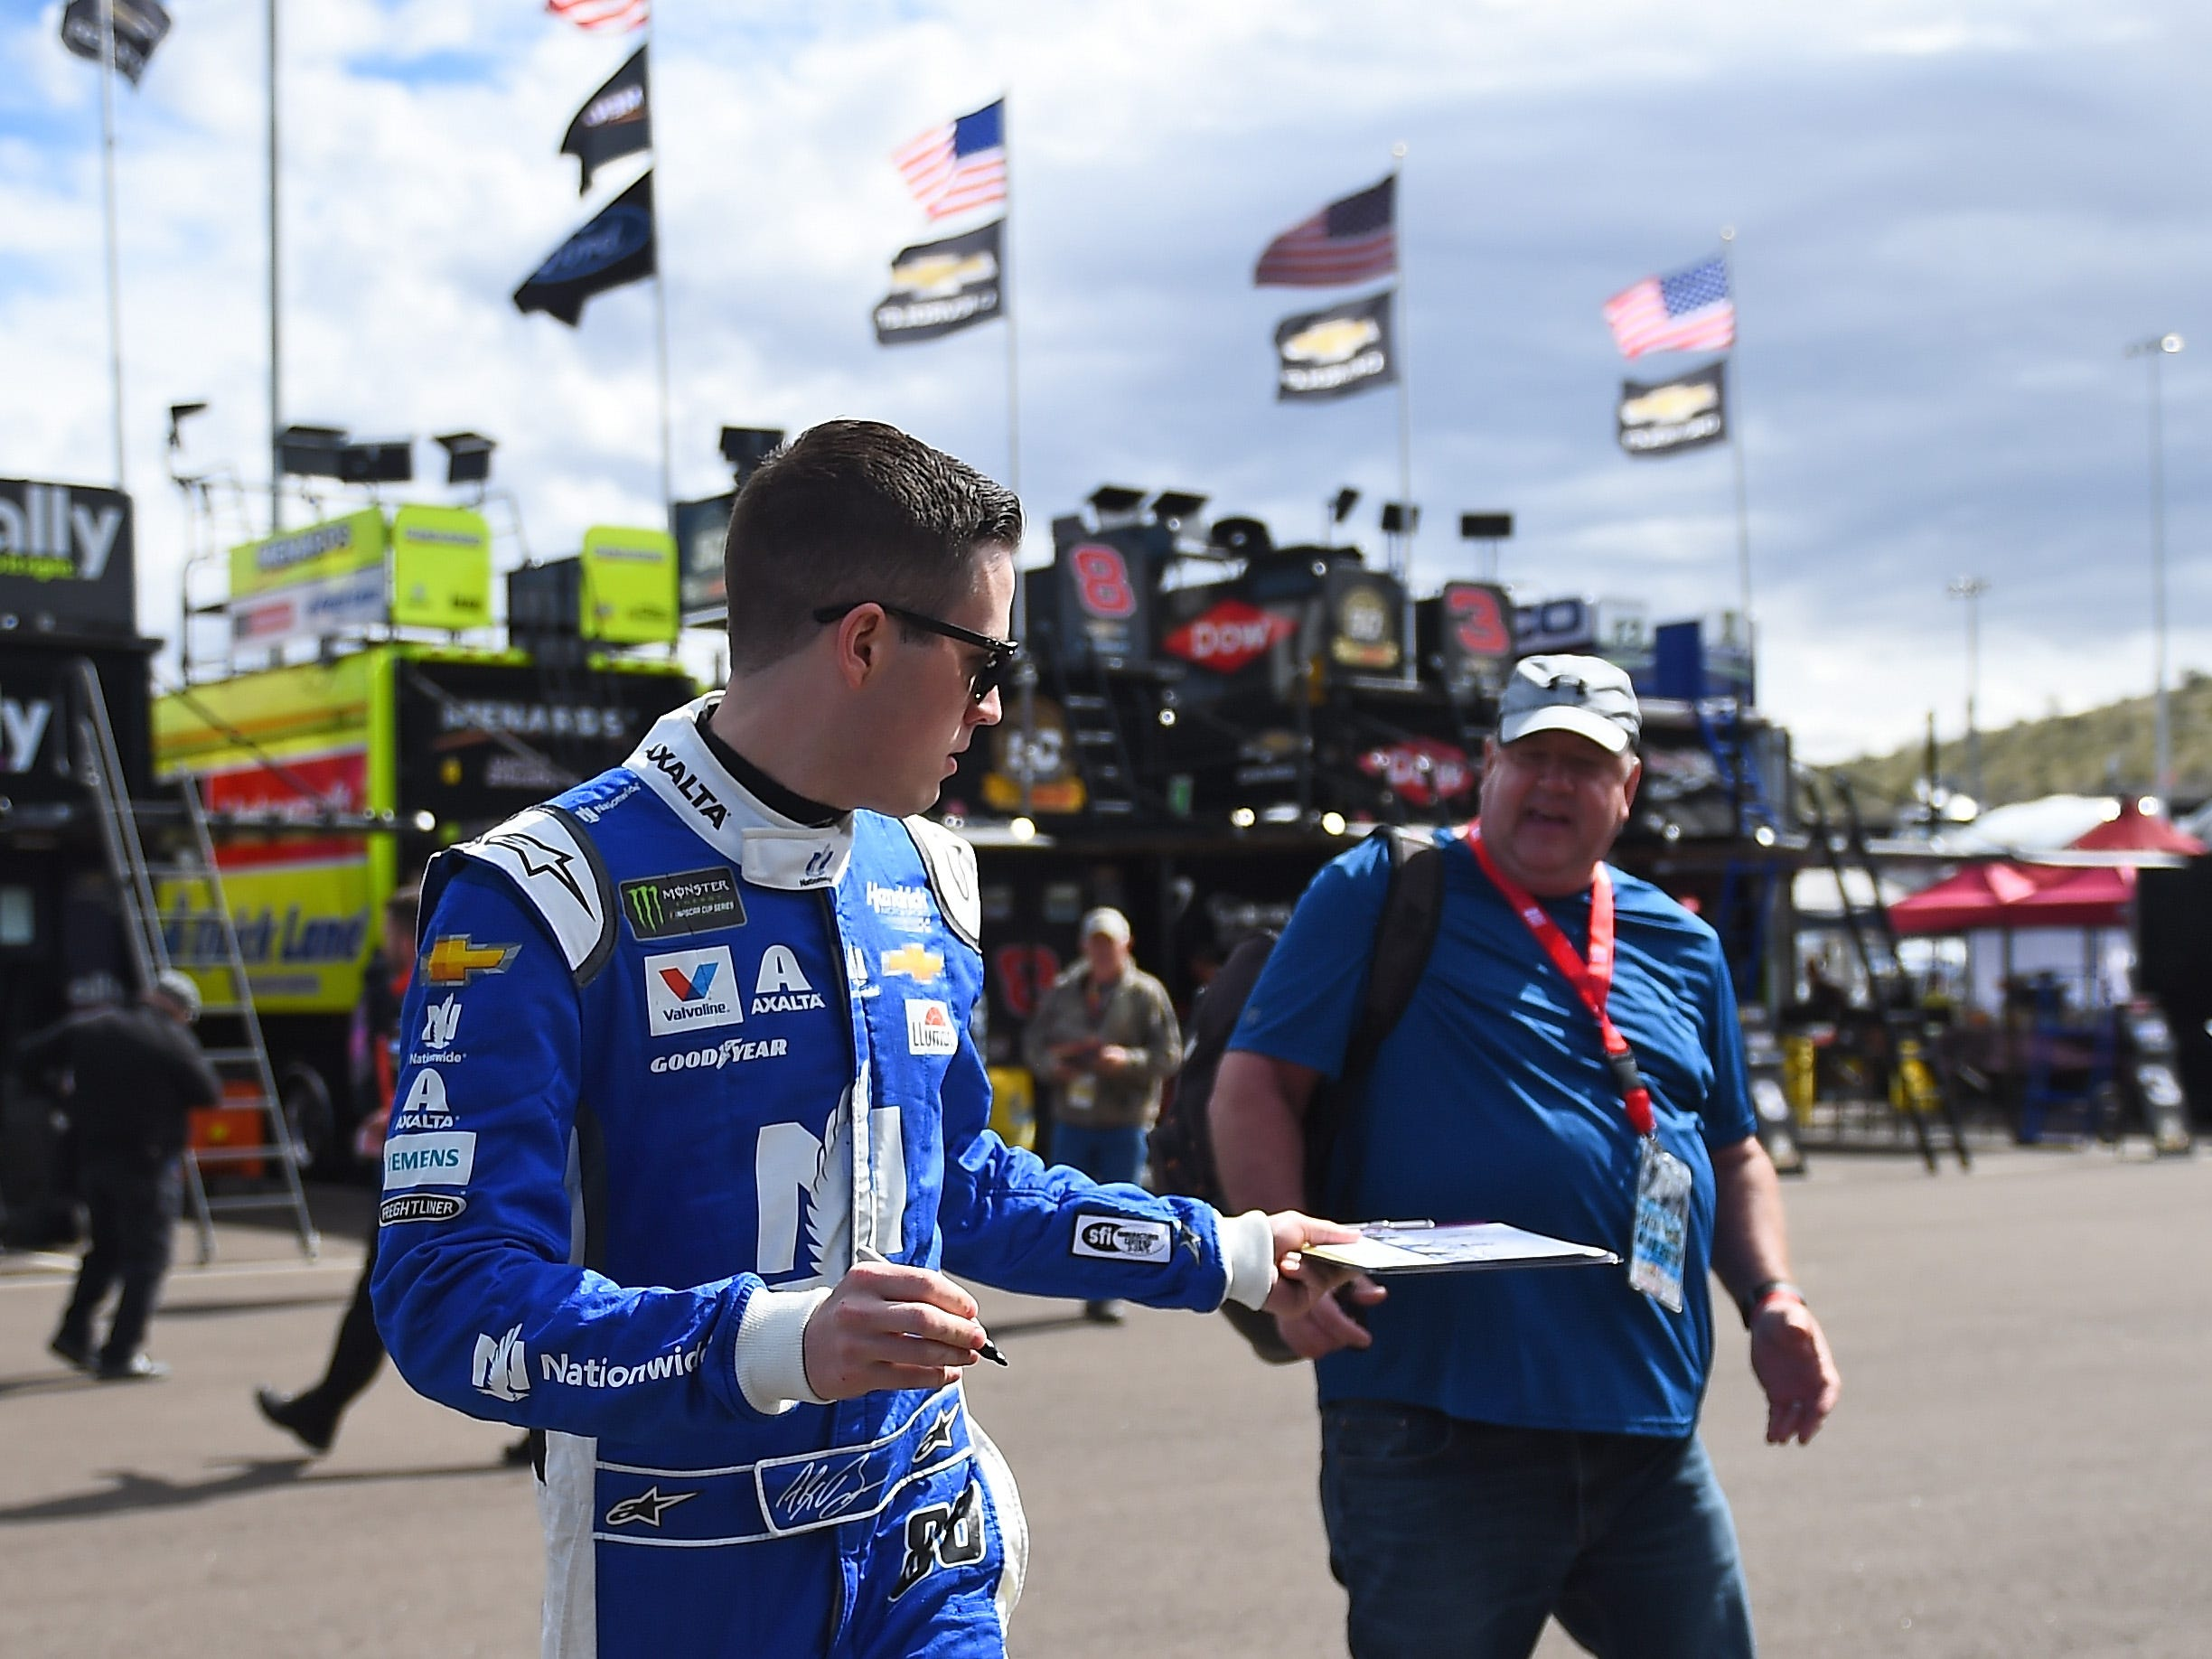 AVONDALE, AZ - MARCH 08:  Alex Bowman, driver of the #88 Nationwide Chevrolet, walks to his car during practice for the Monster Energy NASCAR Cup Series TicketGuardian 500 at ISM Raceway on March 8, 2019 in Avondale, Arizona.